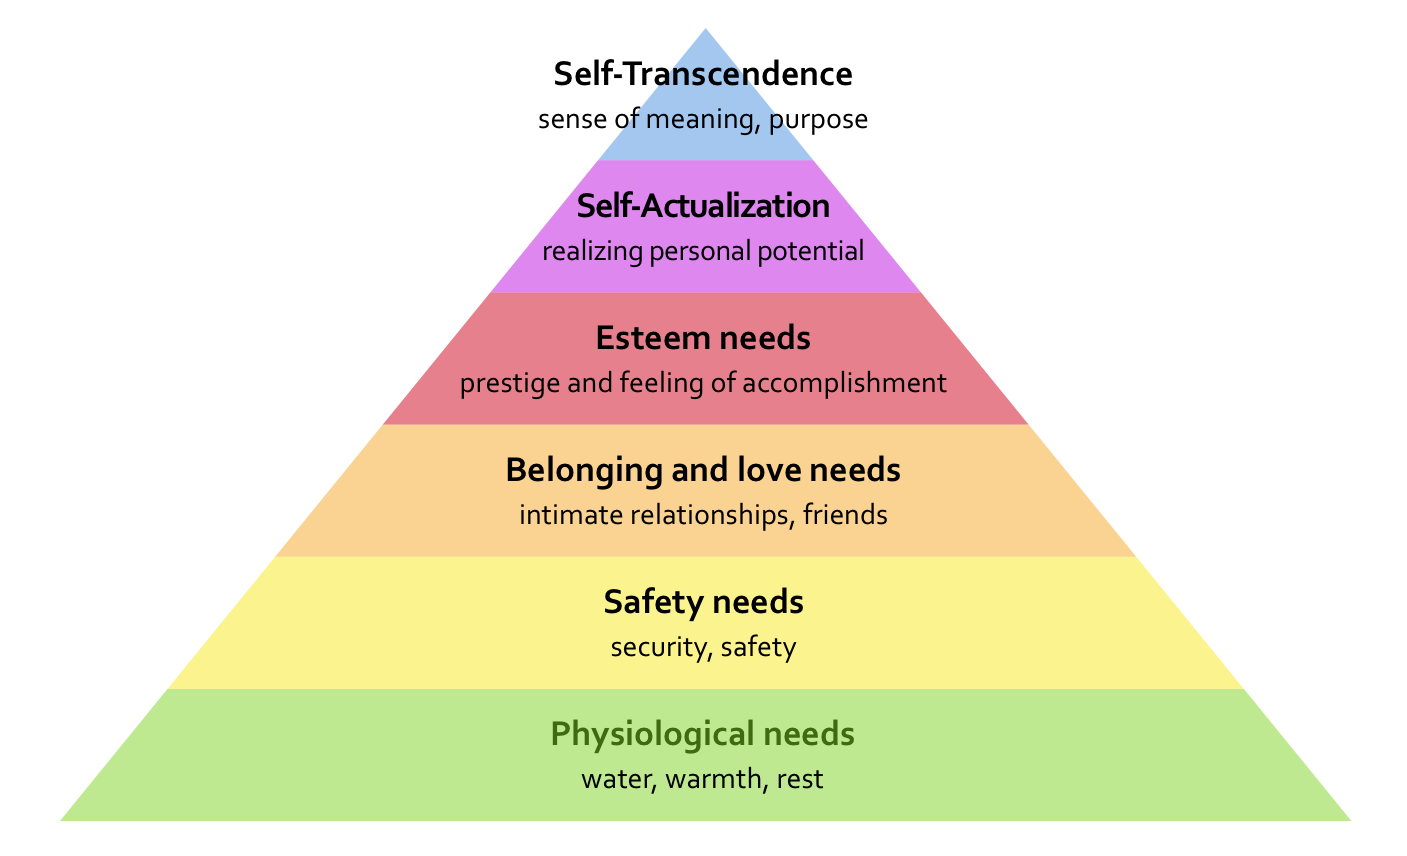 maslow model Maslow's hierarchy of needs is a theory in psychology proposed by abraham maslow in his 1943 paper a theory of human motivation in psychological review fundamental human needs, manfred max-neef's model.